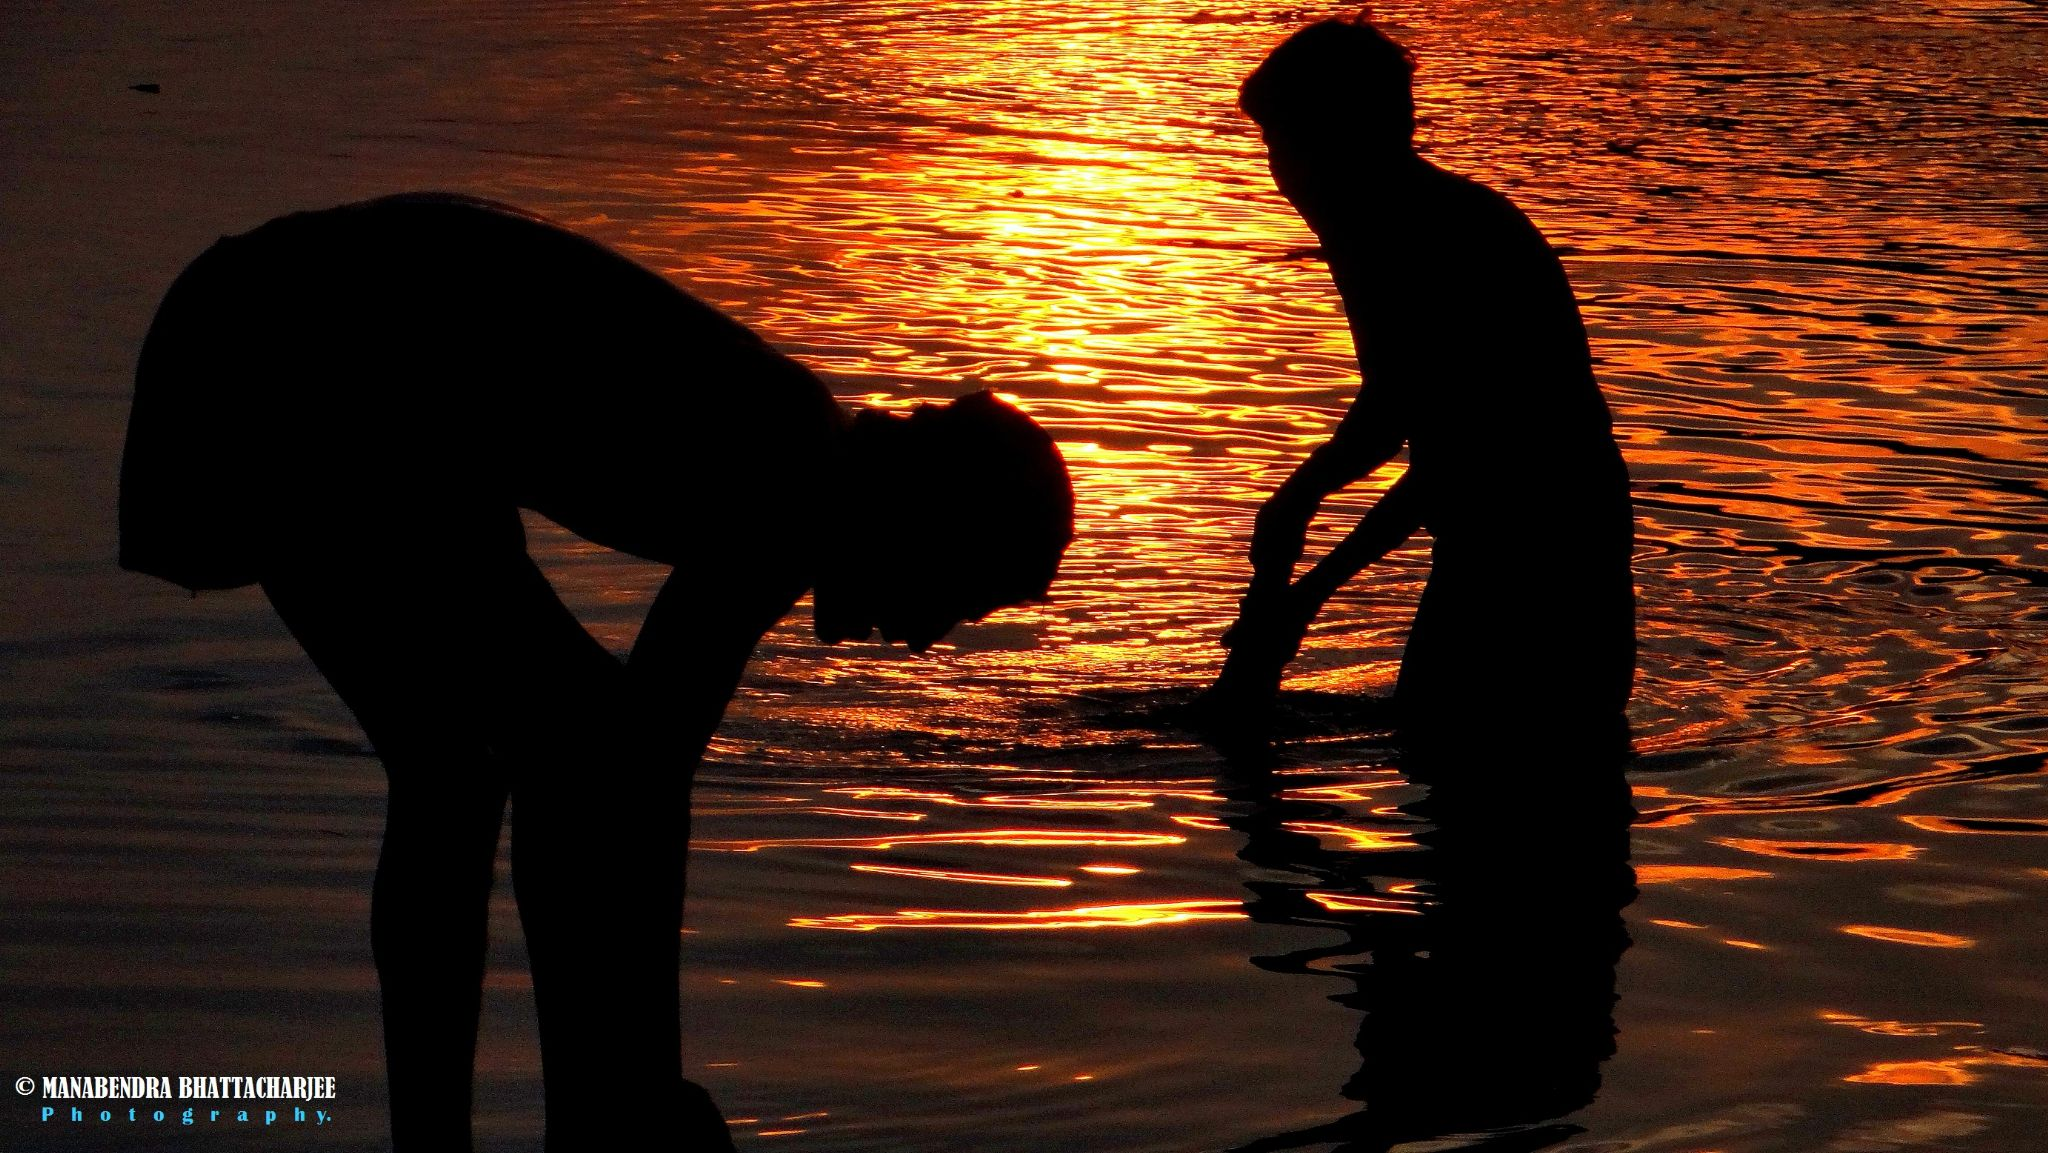 Another evening at river Bramhaputra by Manabendra Bhattacharjee